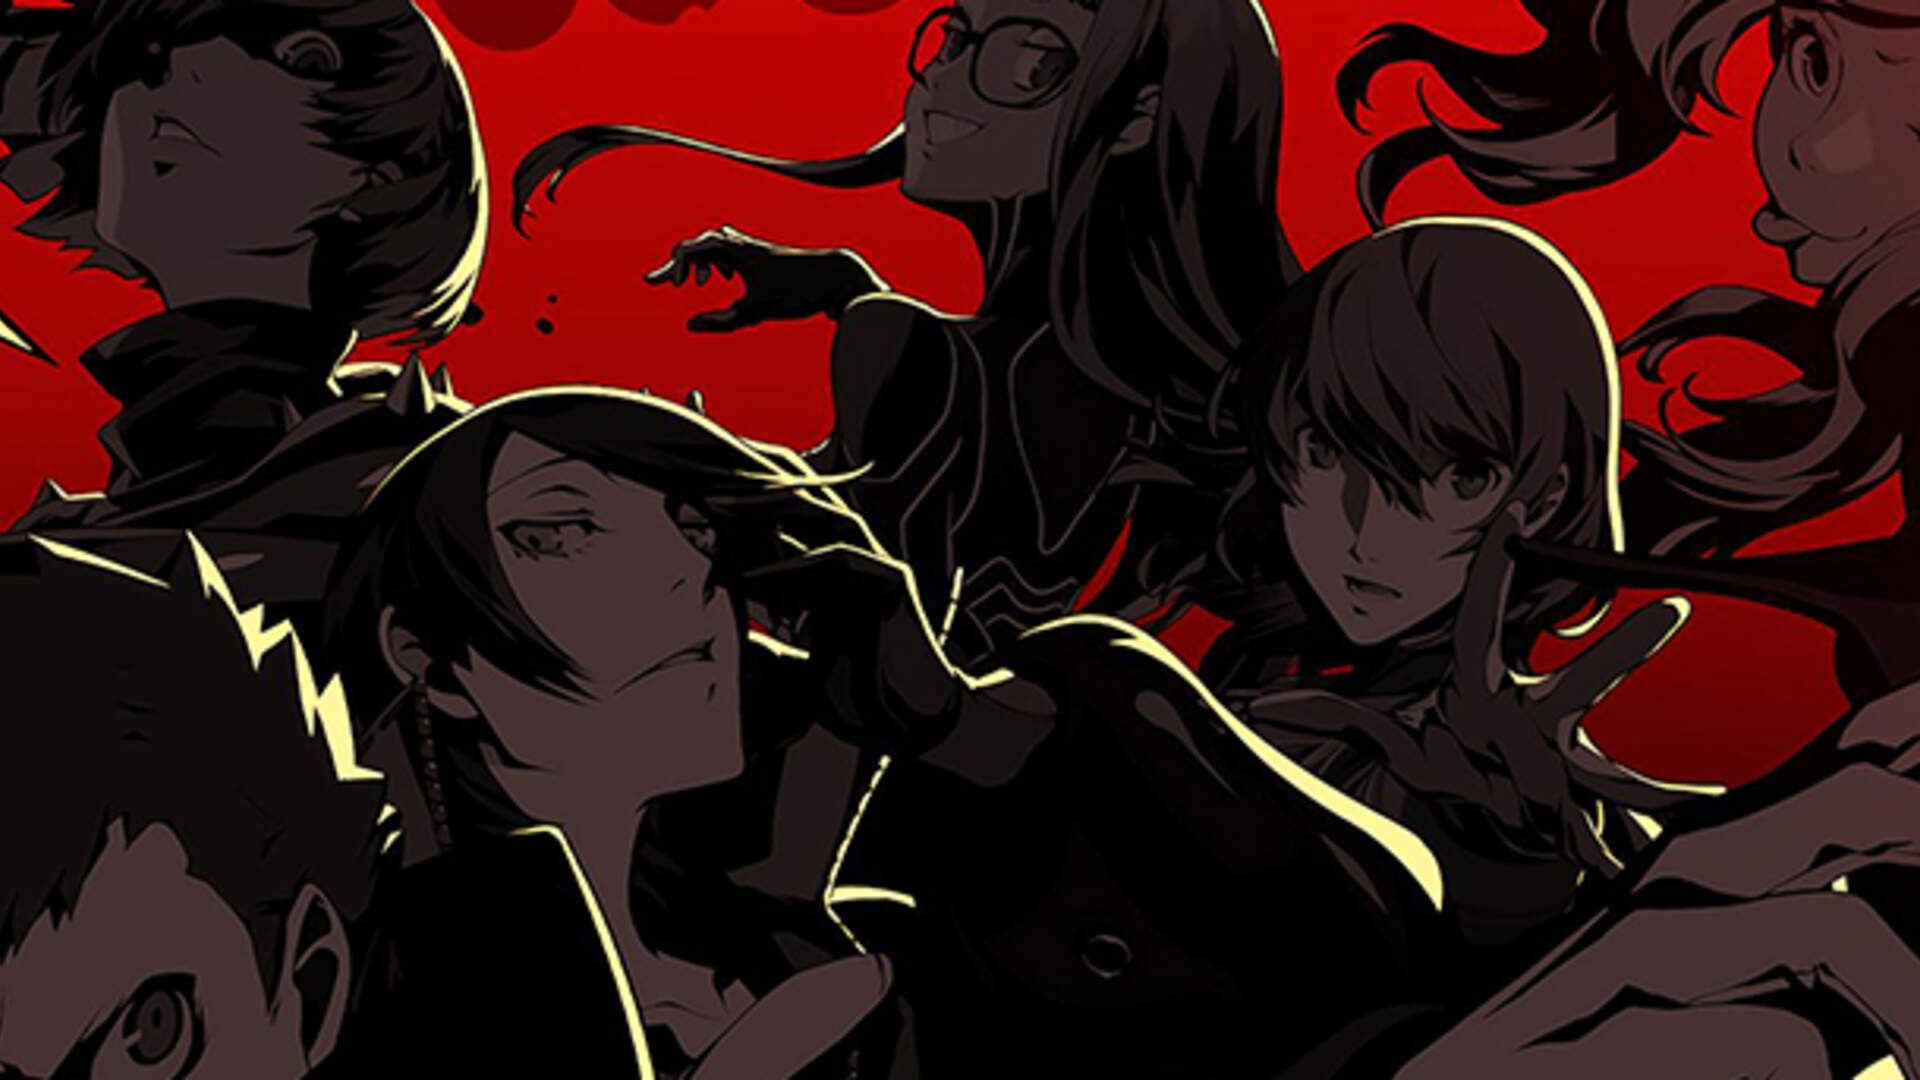 Reflections on Persona 5 With a Year of Hindsight